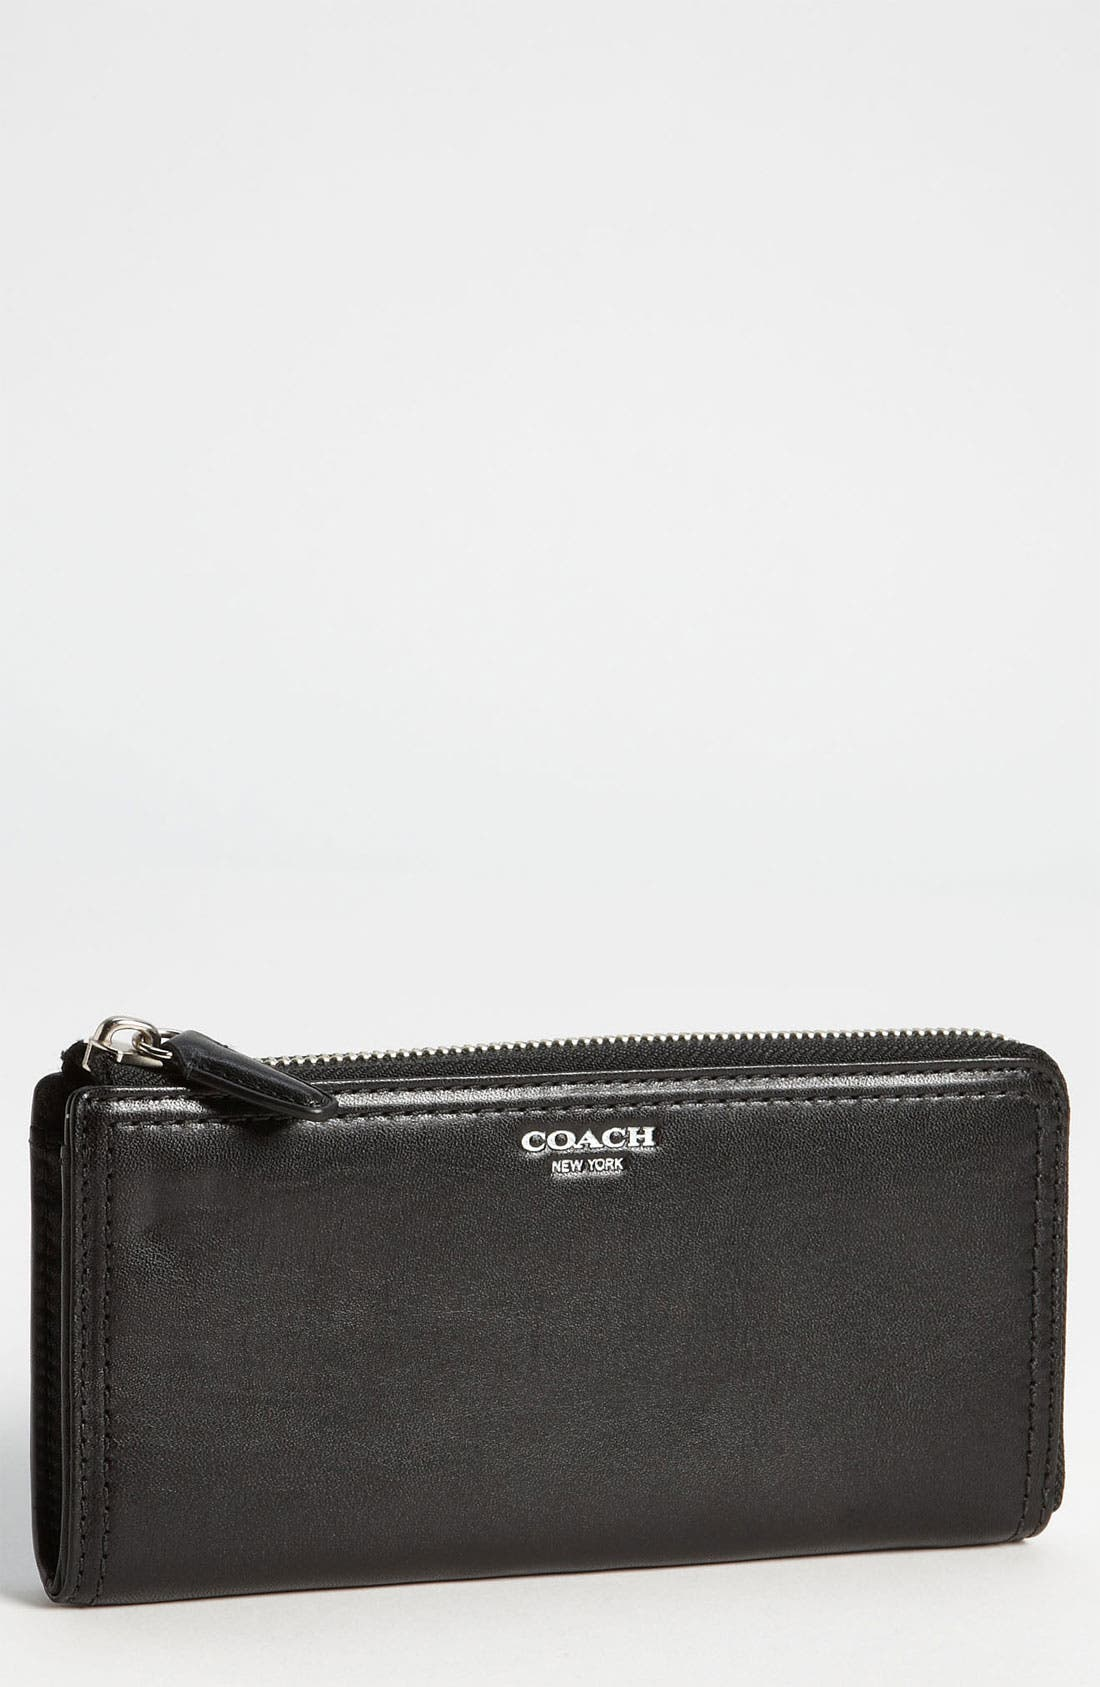 COACH,                             'Legacy' Leather Wallet,                             Main thumbnail 1, color,                             001